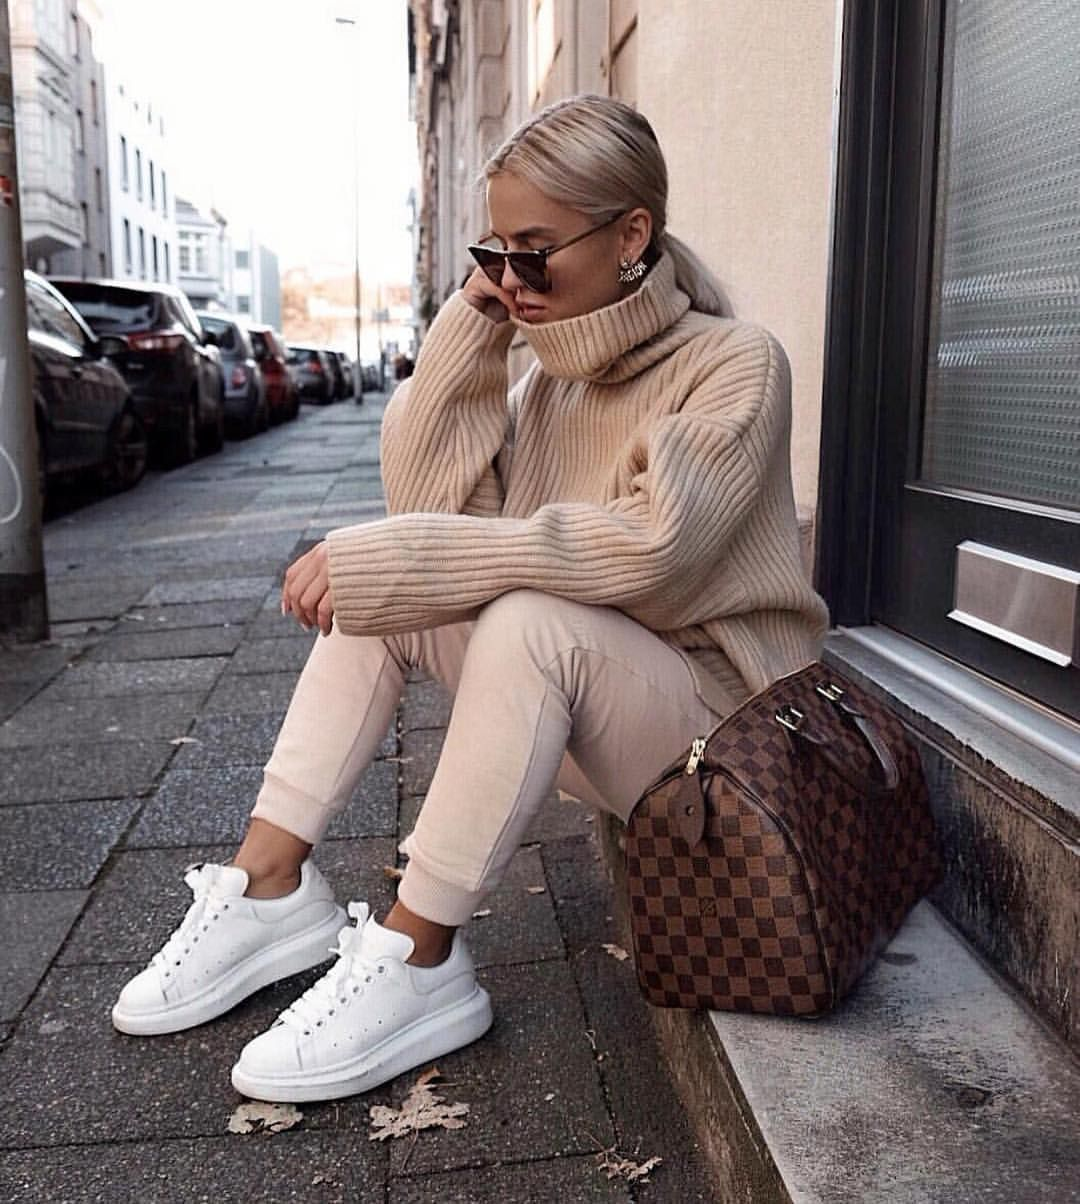 "Photo of Louis Vuitton No.1 Fan Page on Instagram: ""Lovely outfit via @donnaromina  #louisvuitton  #louisvuittoninternational  #speedy30  #louisvuittonspeedy #lv #lvspeedy"""